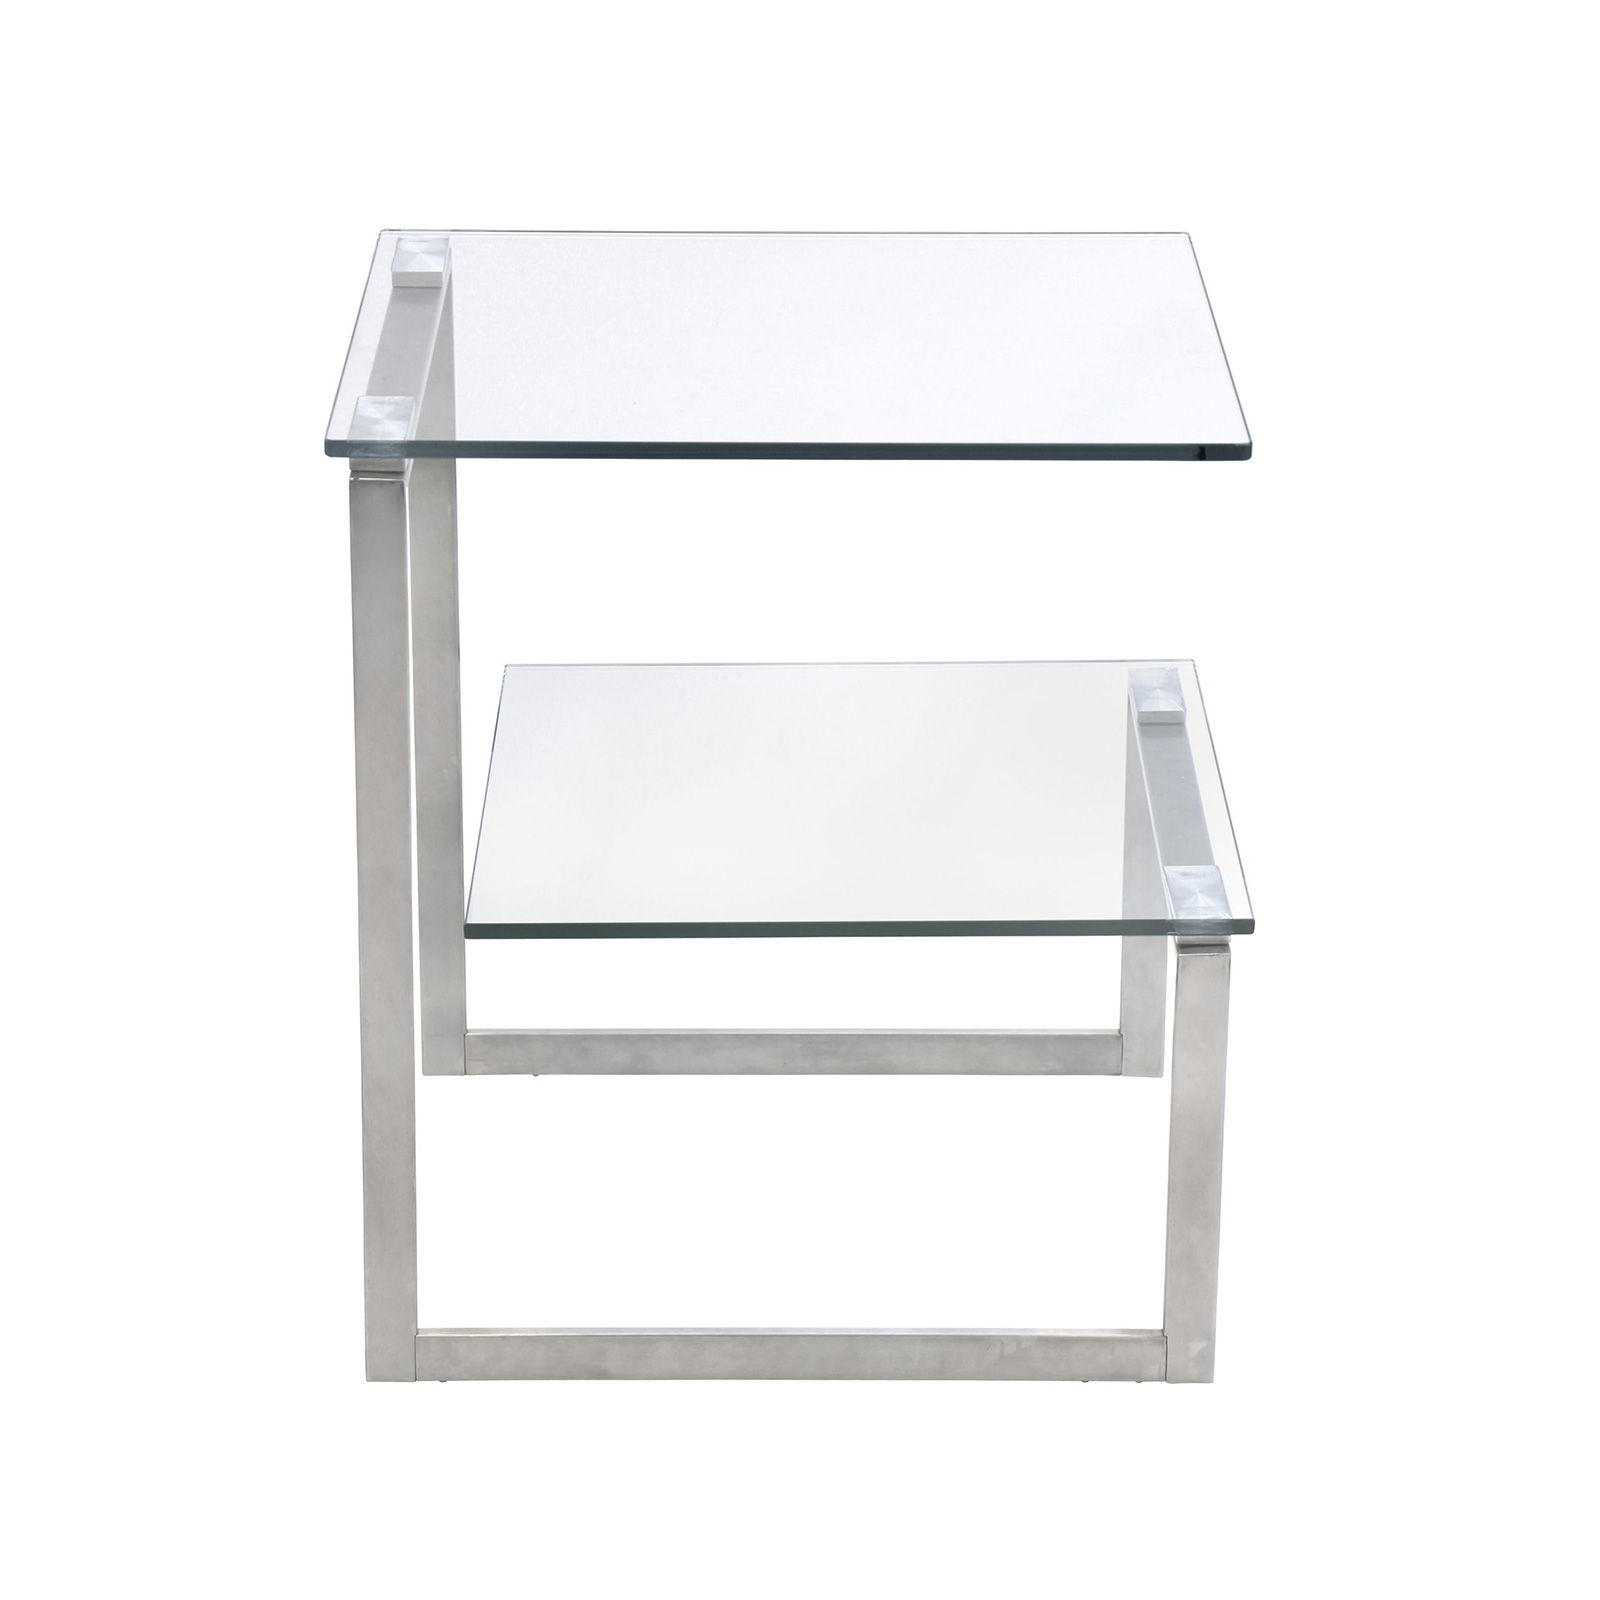 work some living room magic with this side table that radiates